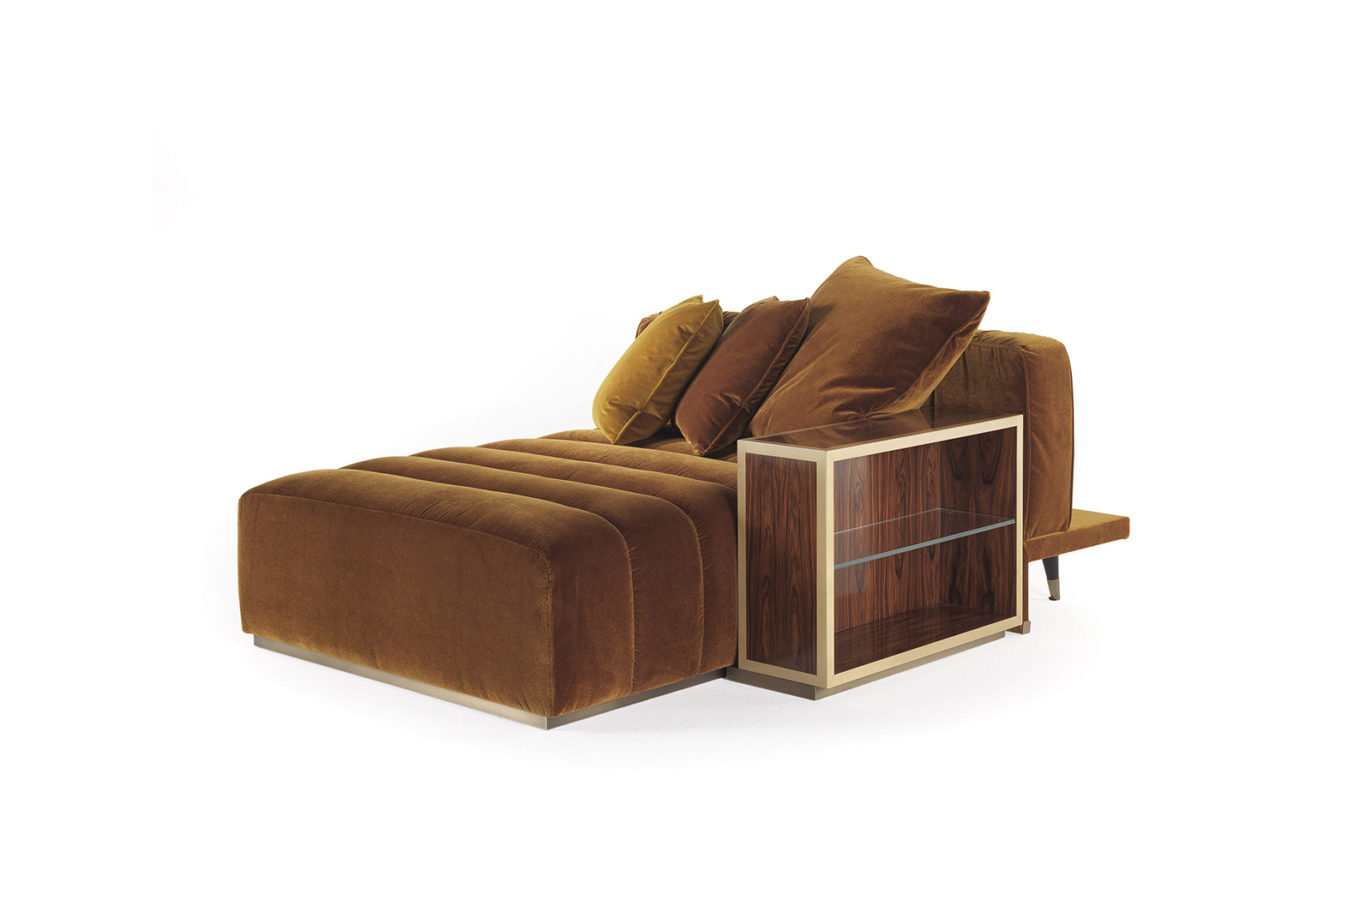 Highlander Chaise Longue